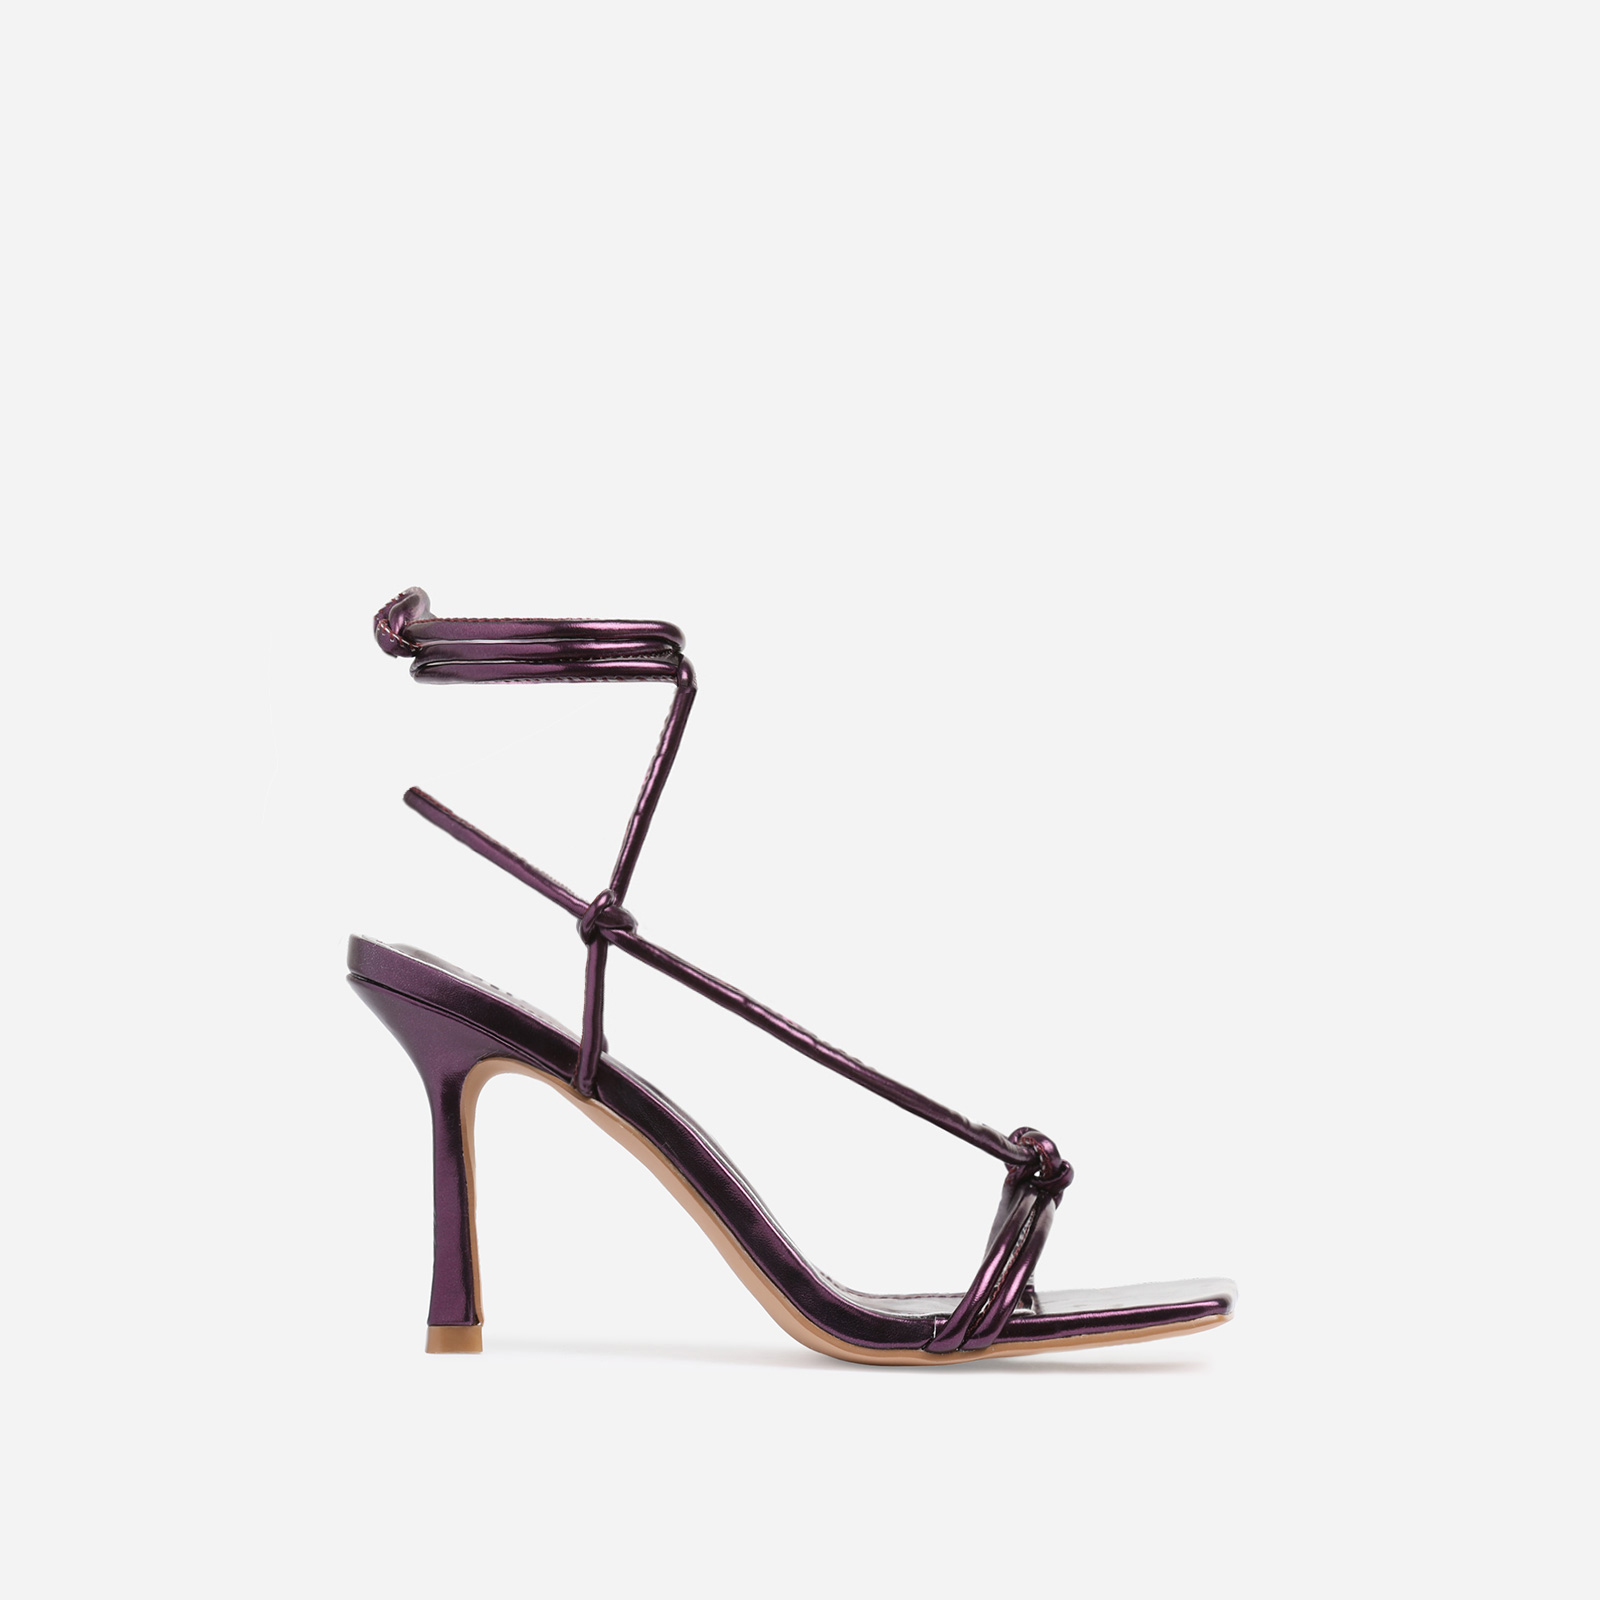 Priya Square Toe Lace Up Heel In Metallic Purple Faux Leather